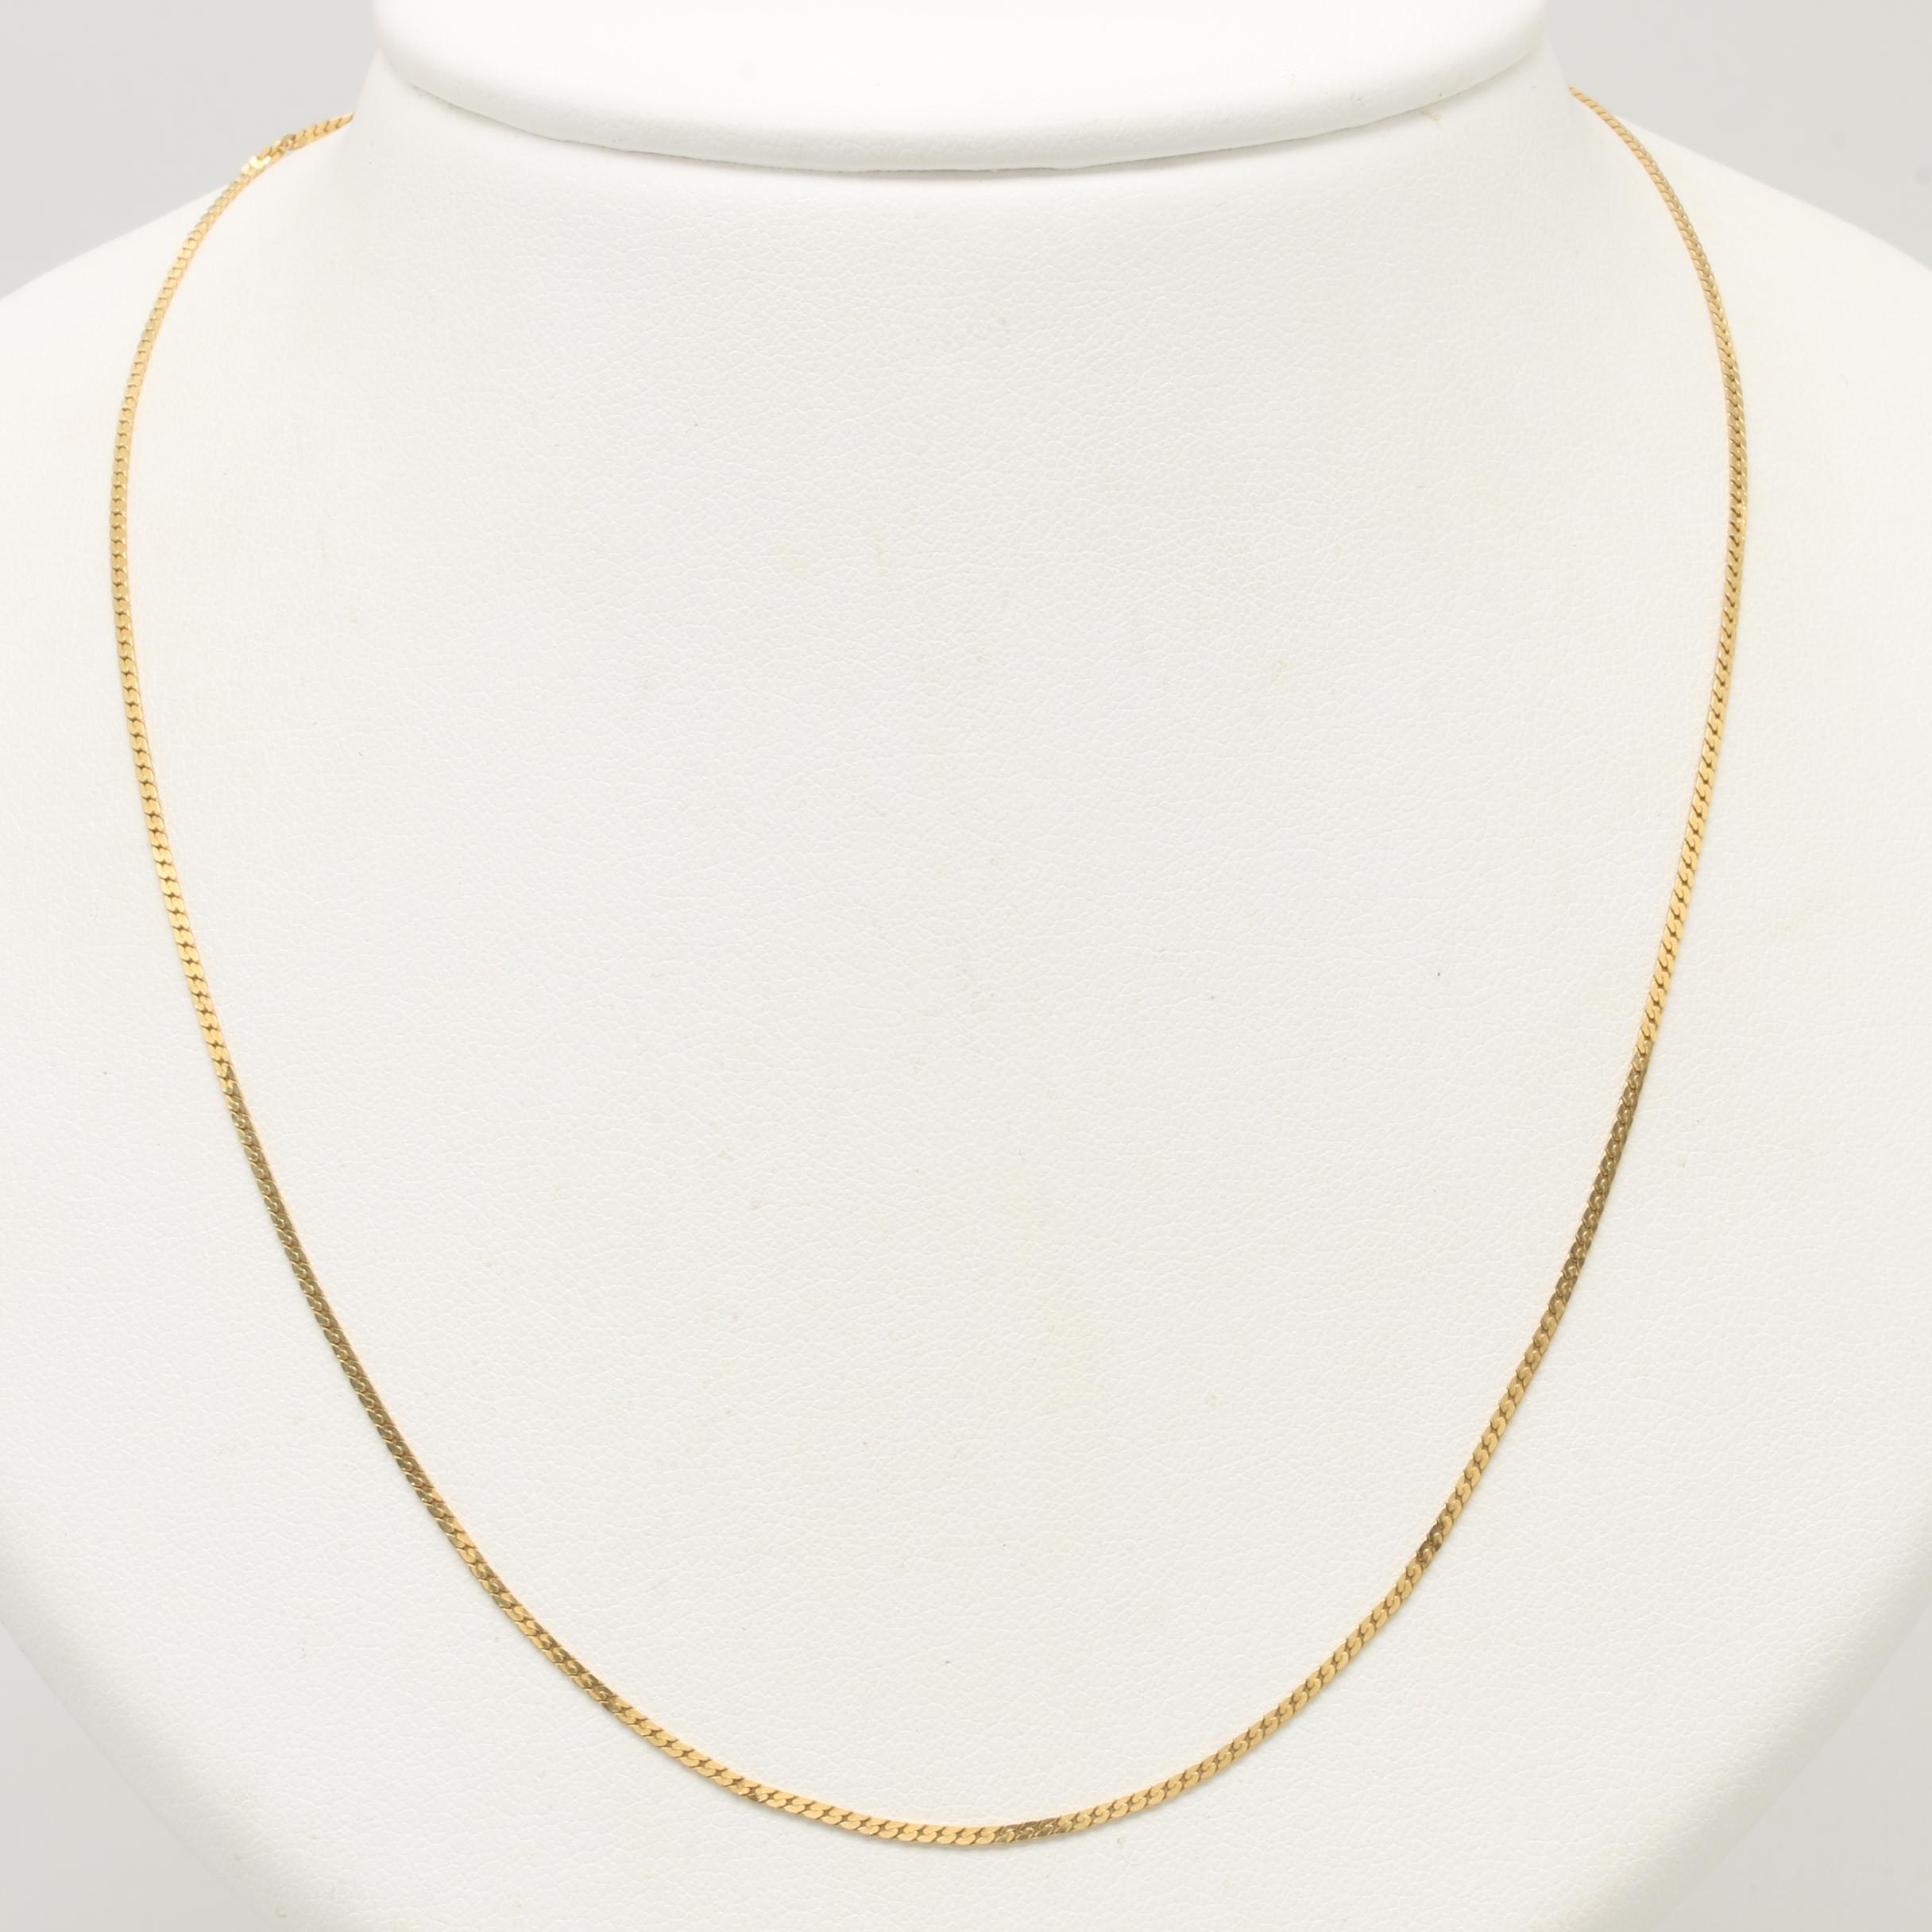 18K Yellow Gold Curb Link Necklace